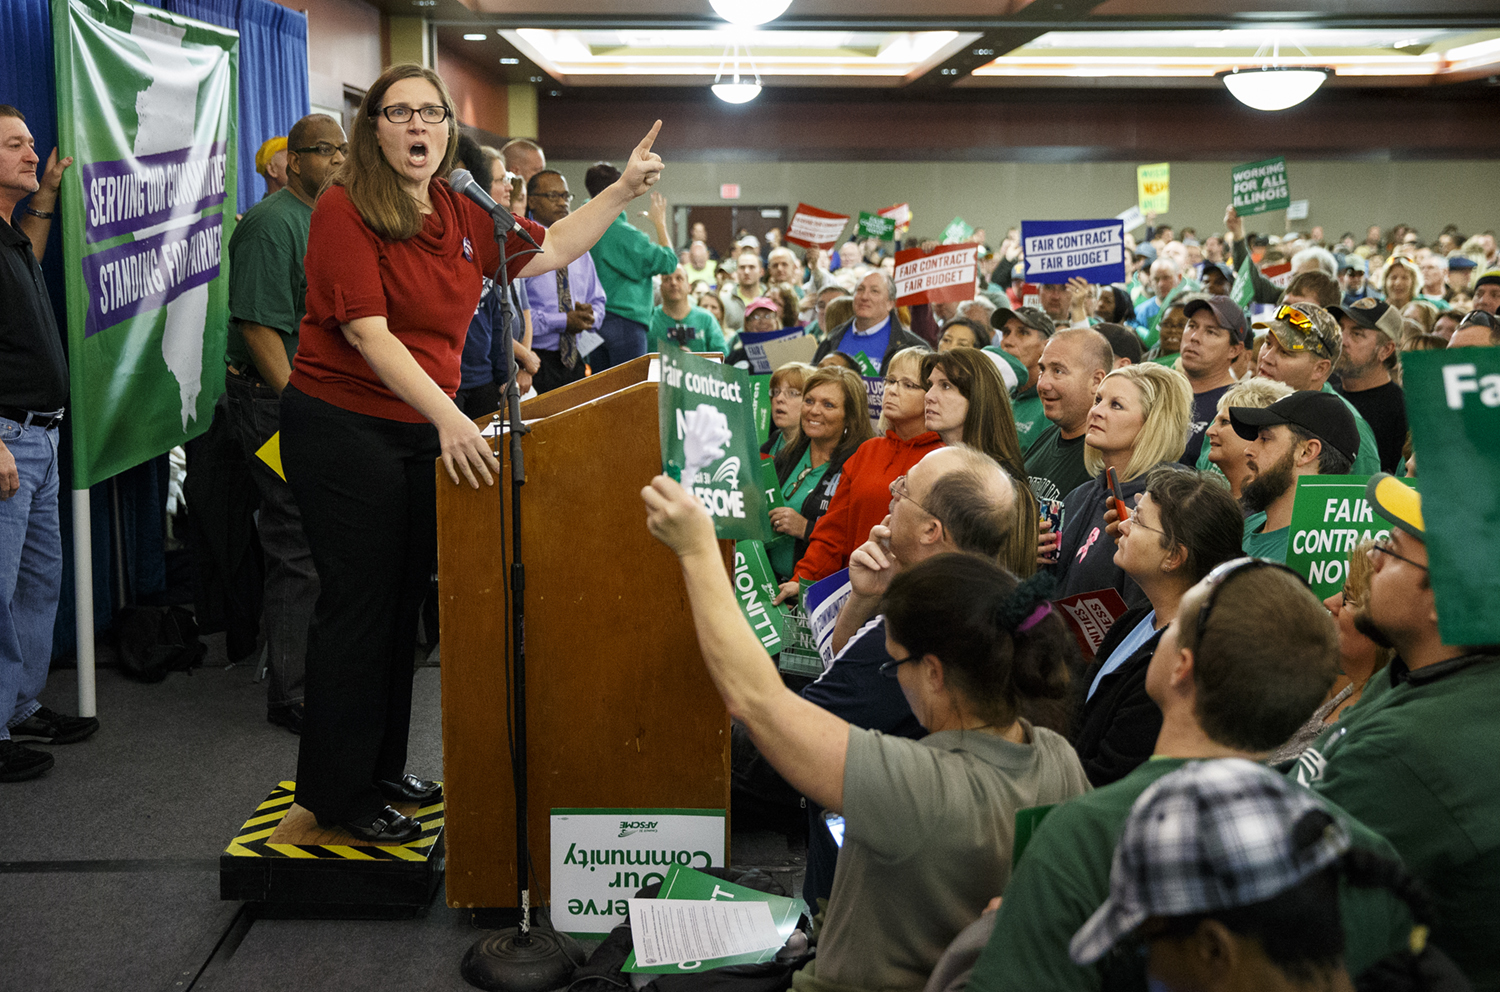 """Joanna Webb-Gauvin, legislative director for American Federation of State, County and Municipal Employees Council 31, addresses the crowd gathered for one of AFSCME's seven statewide """"Rallies for Fairness"""" Thursday, Dec. 10, 2015. Ted Schurter/The State Journal-Register"""